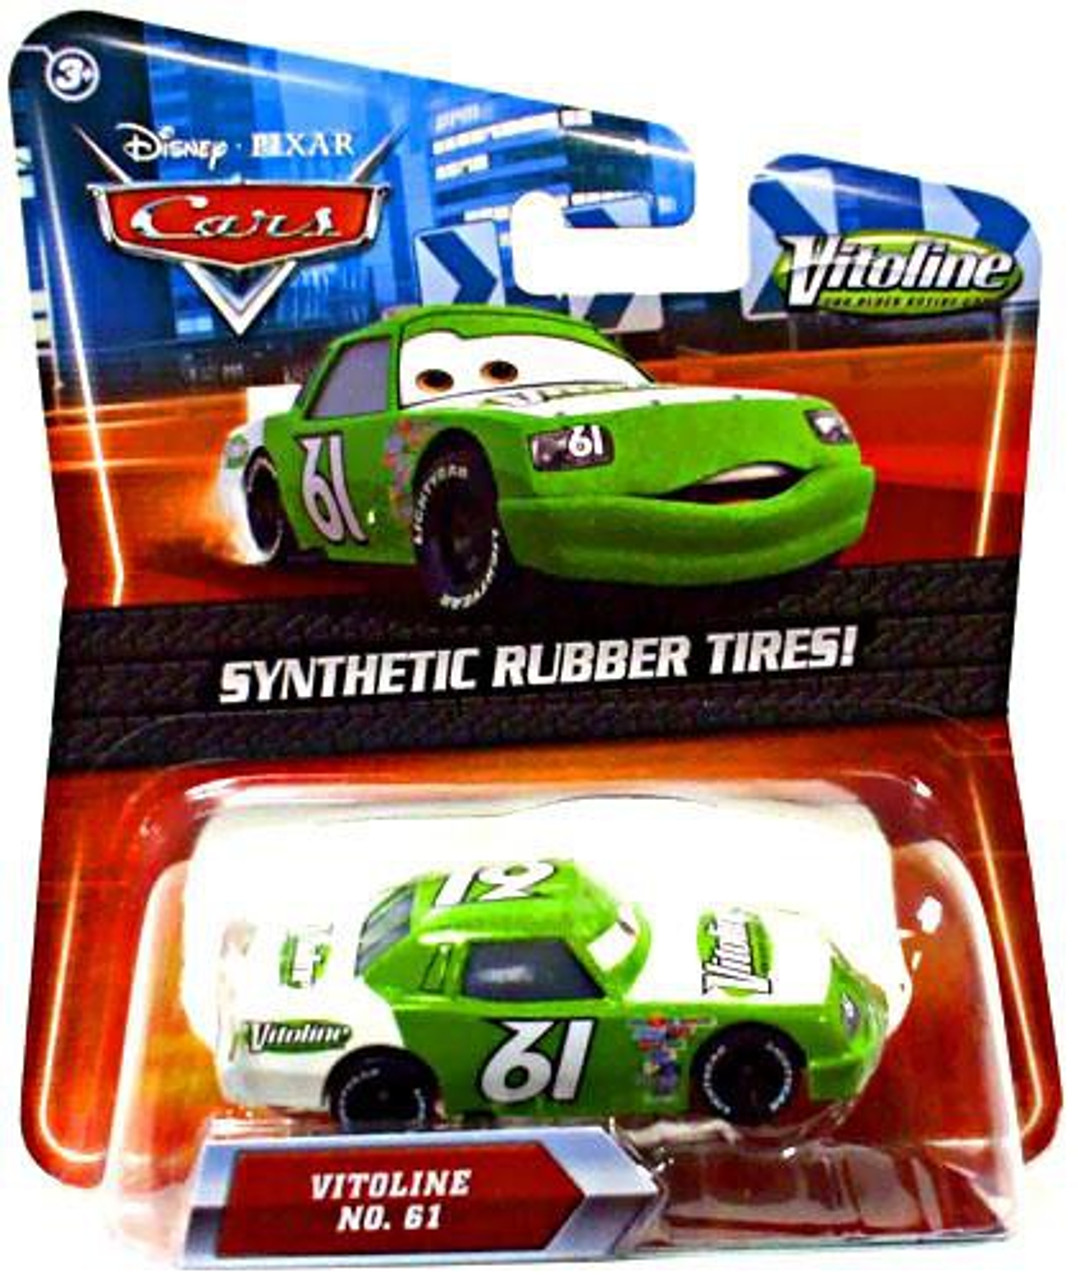 Disney Cars Synthetic Rubber Tires Vitoline Exclusive Diecast Car